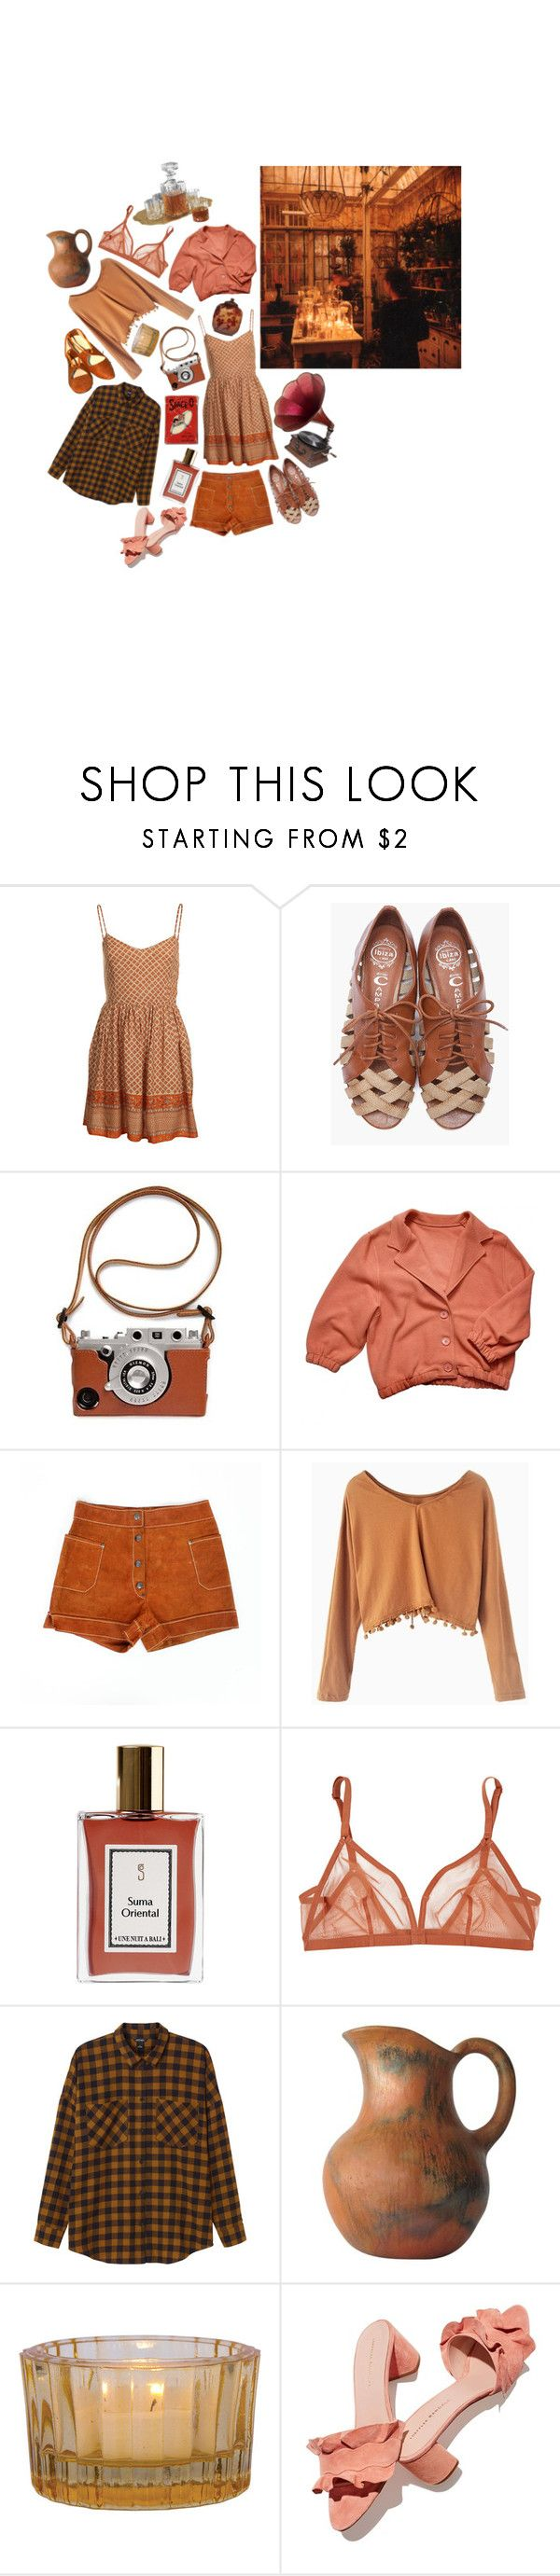 """Untitled #1888"" by flapper-shoes ❤ liked on Polyvore featuring MINKPINK, Victrola, Jeffrey Campbell, American Apparel, Dukes, Eres, Monki, Reception and Loeffler Randall"